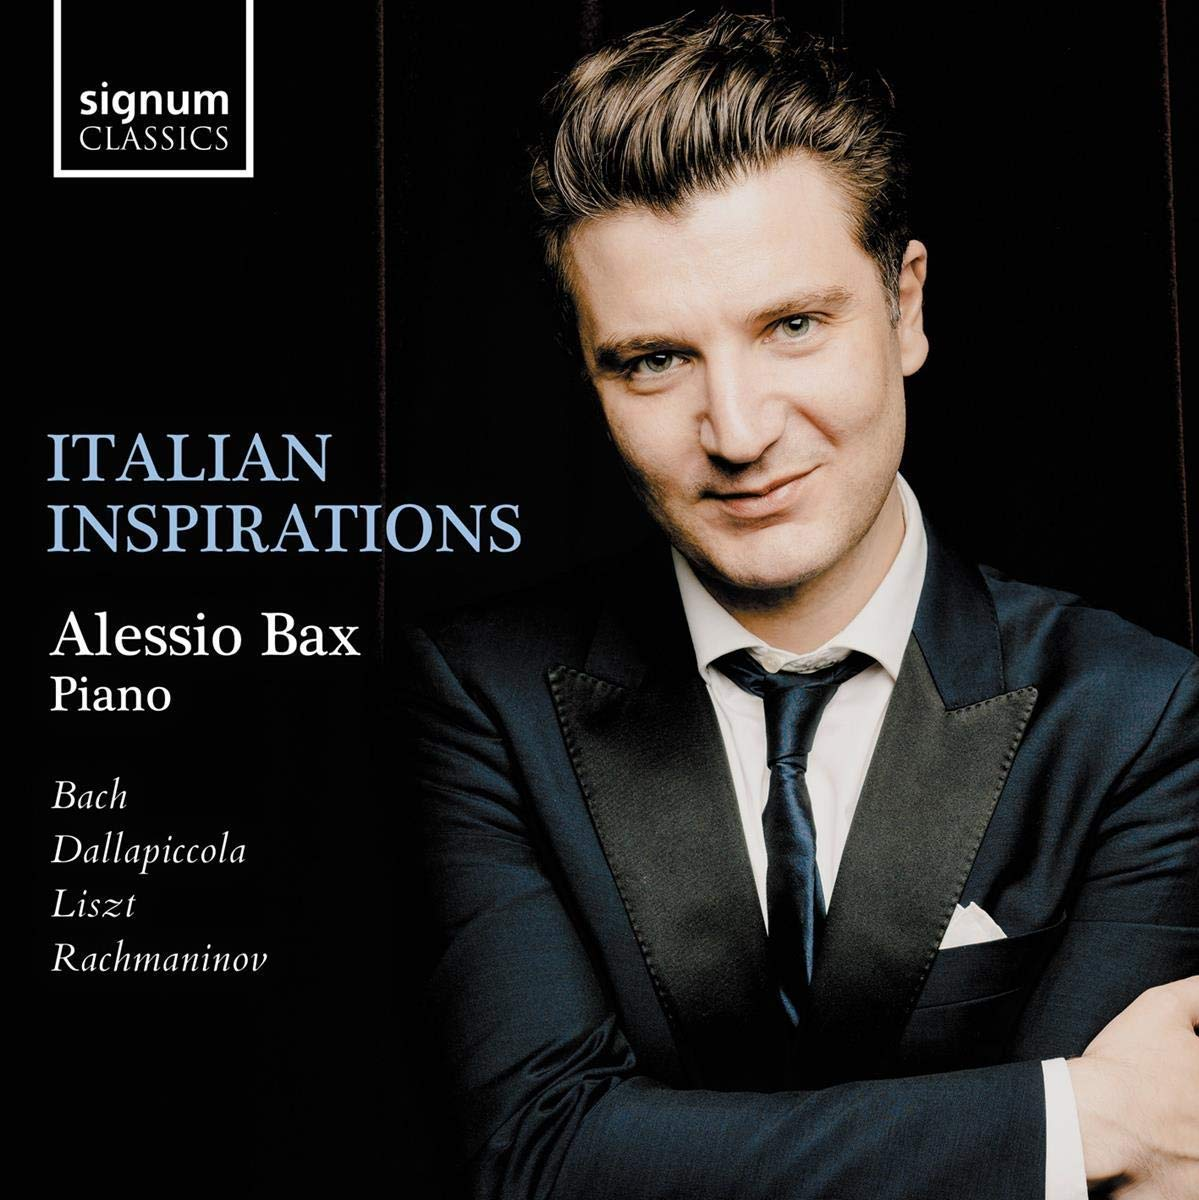 Review of Italian Inspirations (Alessio Bax)